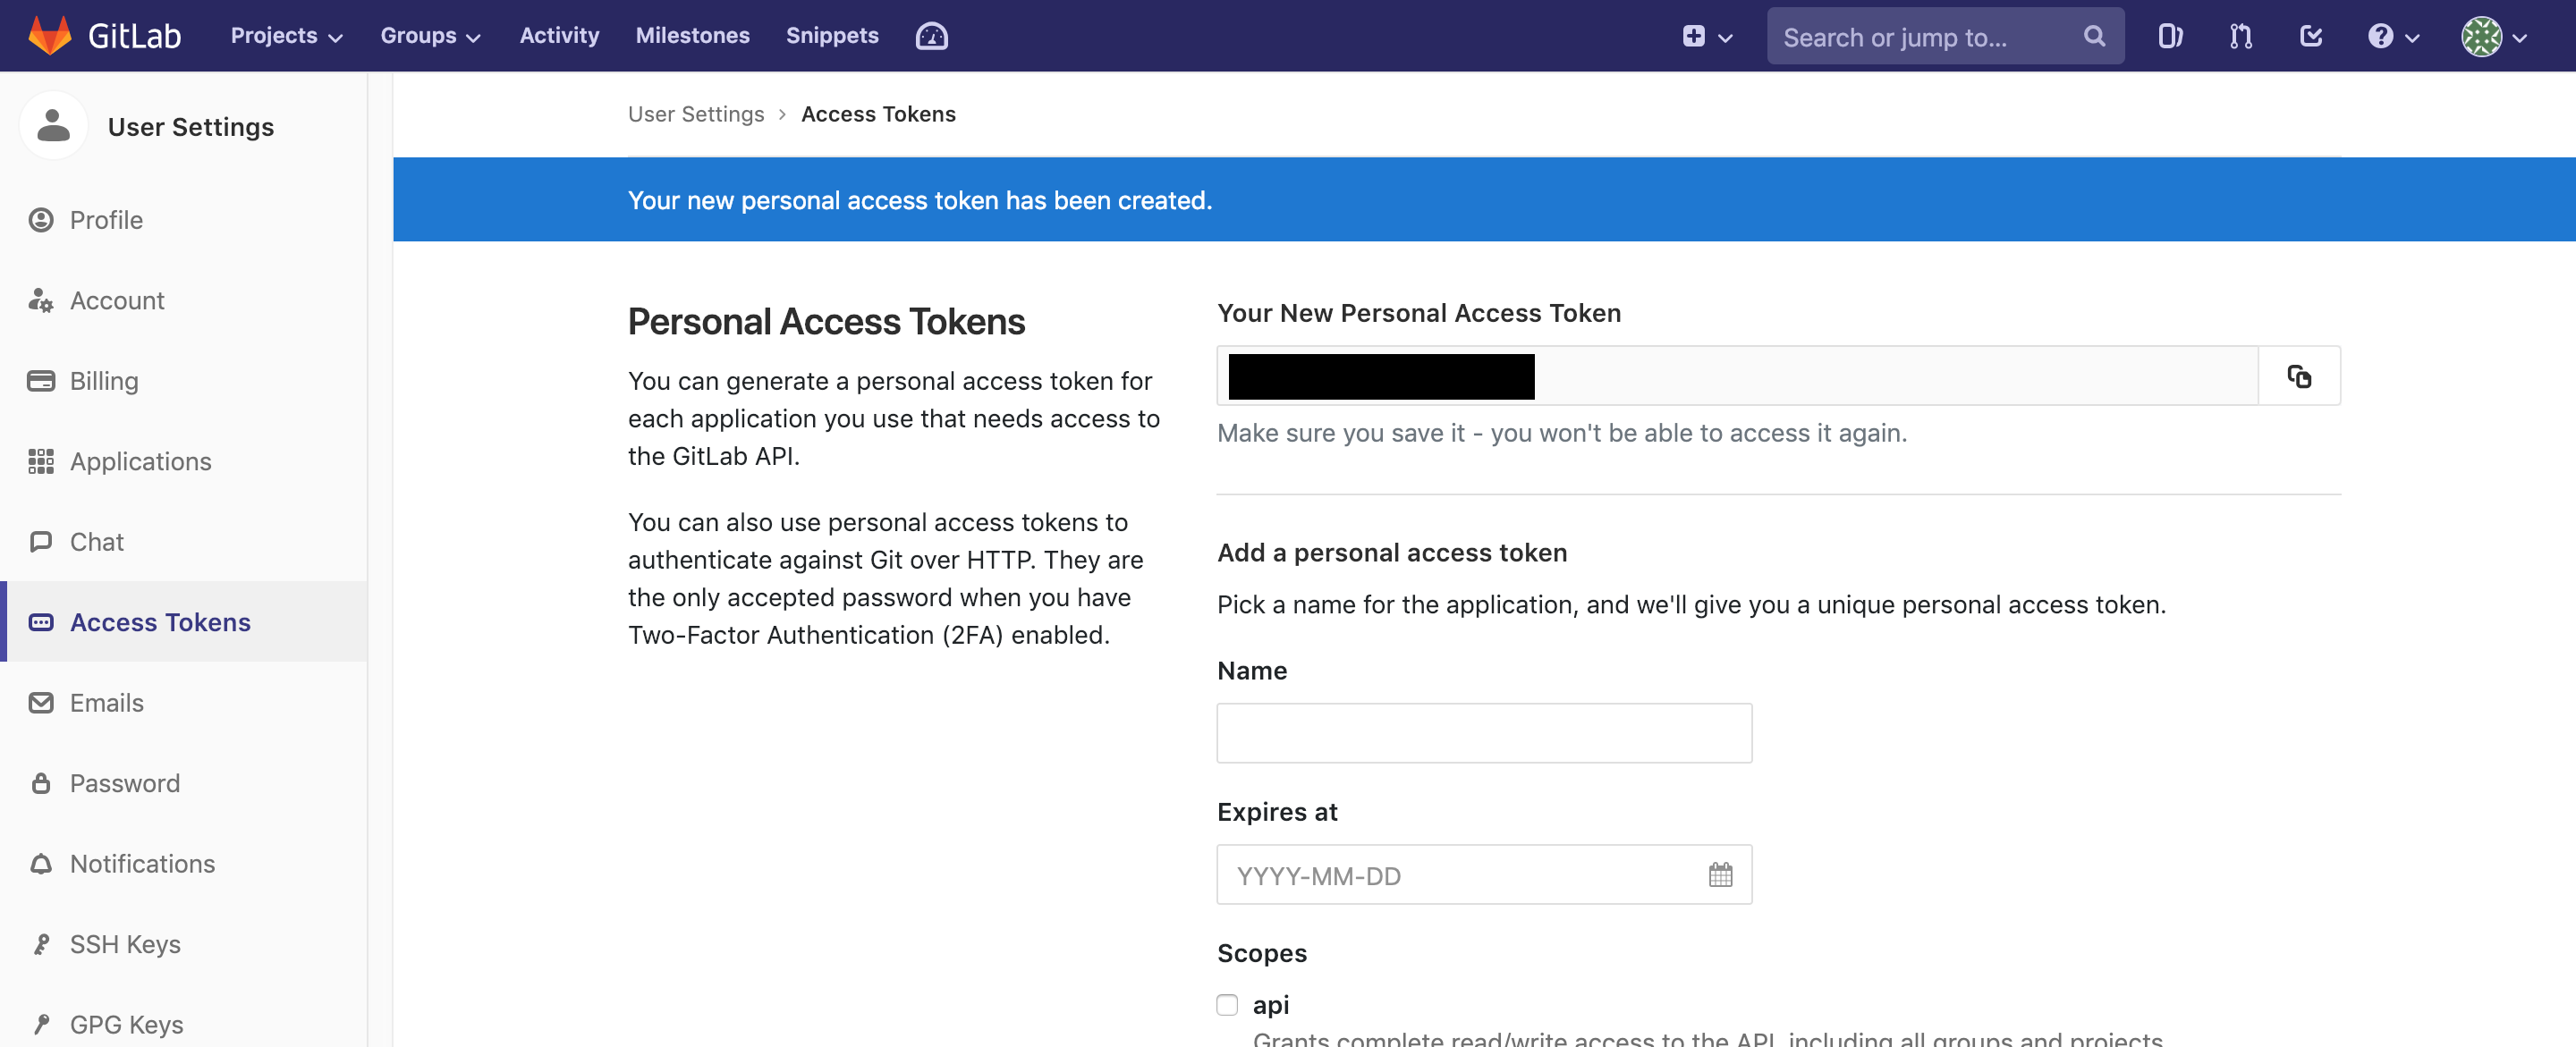 screencapture-gitlab-profile-personal_access_tokens-2019-01-16-05_47_29.png